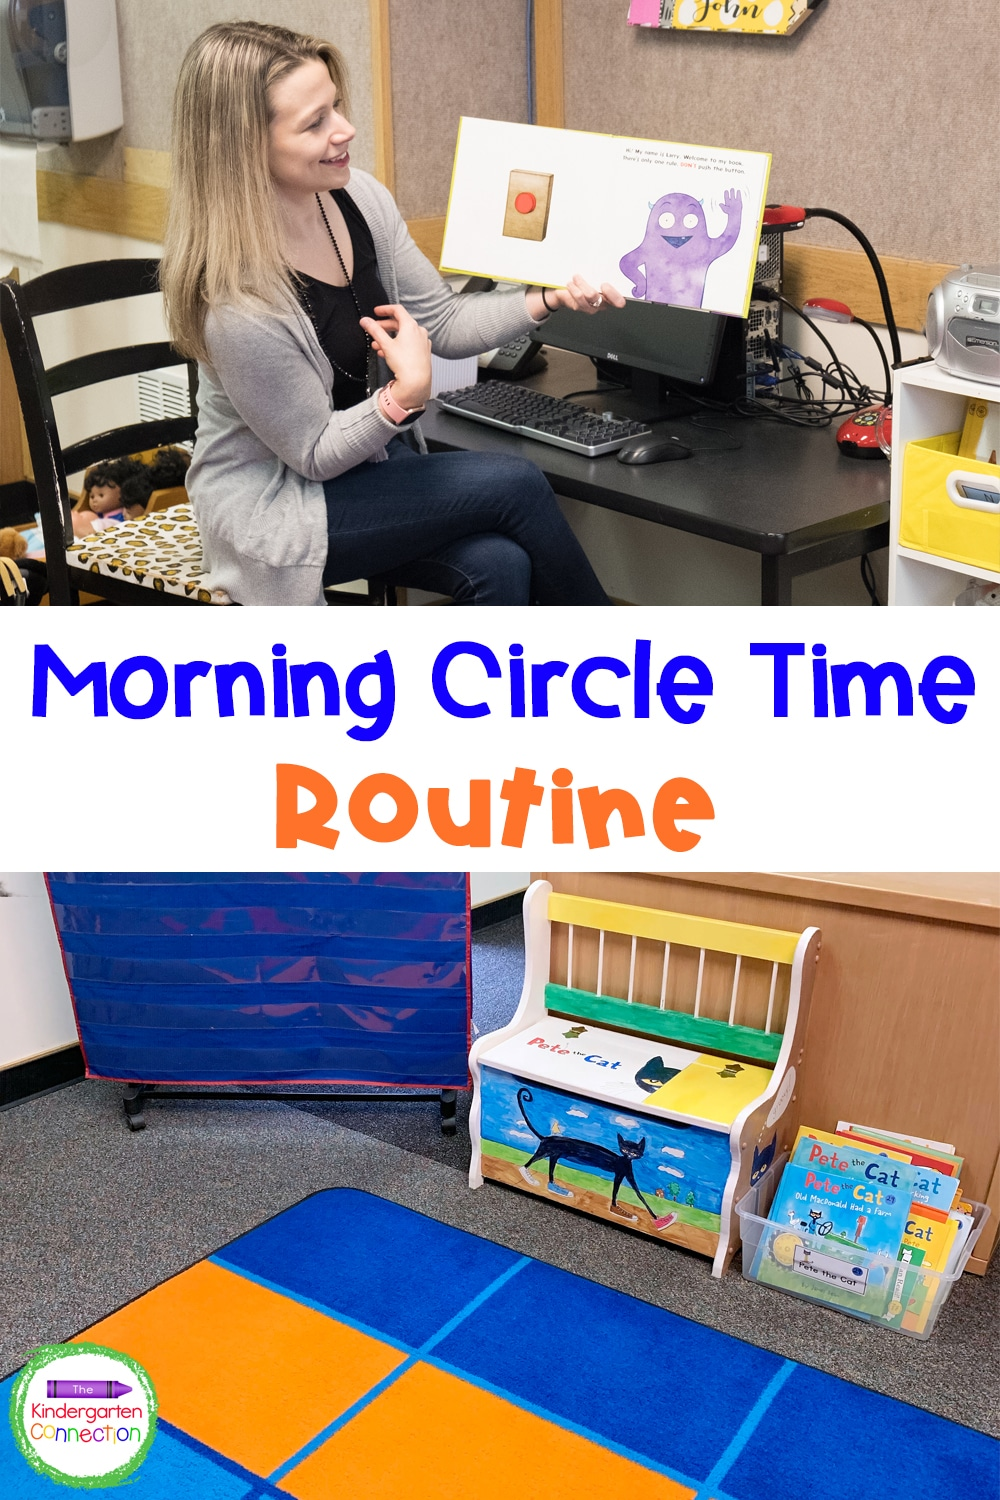 Check out my morning Circle Time routine for Pre-K & Kindergarten and start making time for building community in the classroom!